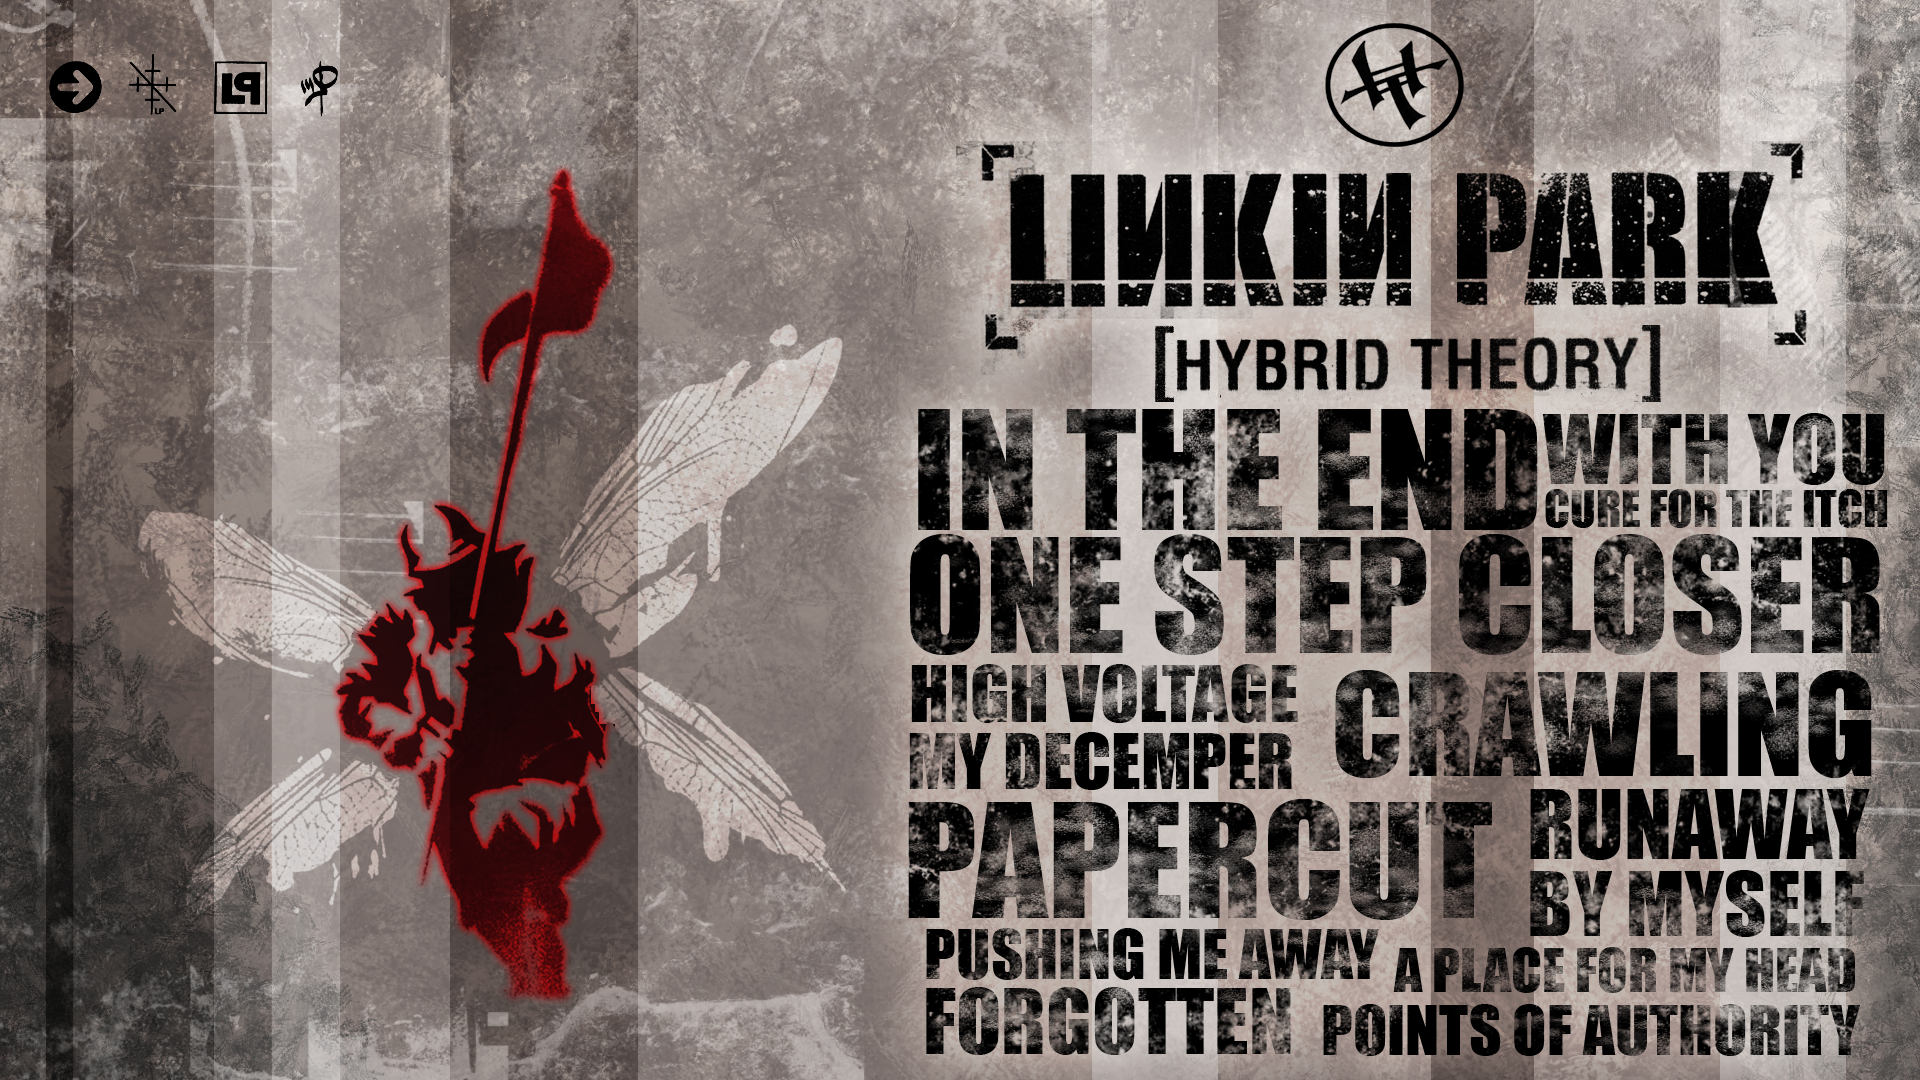 Linkin Park Hybrid Theory Full Album Torrent Download